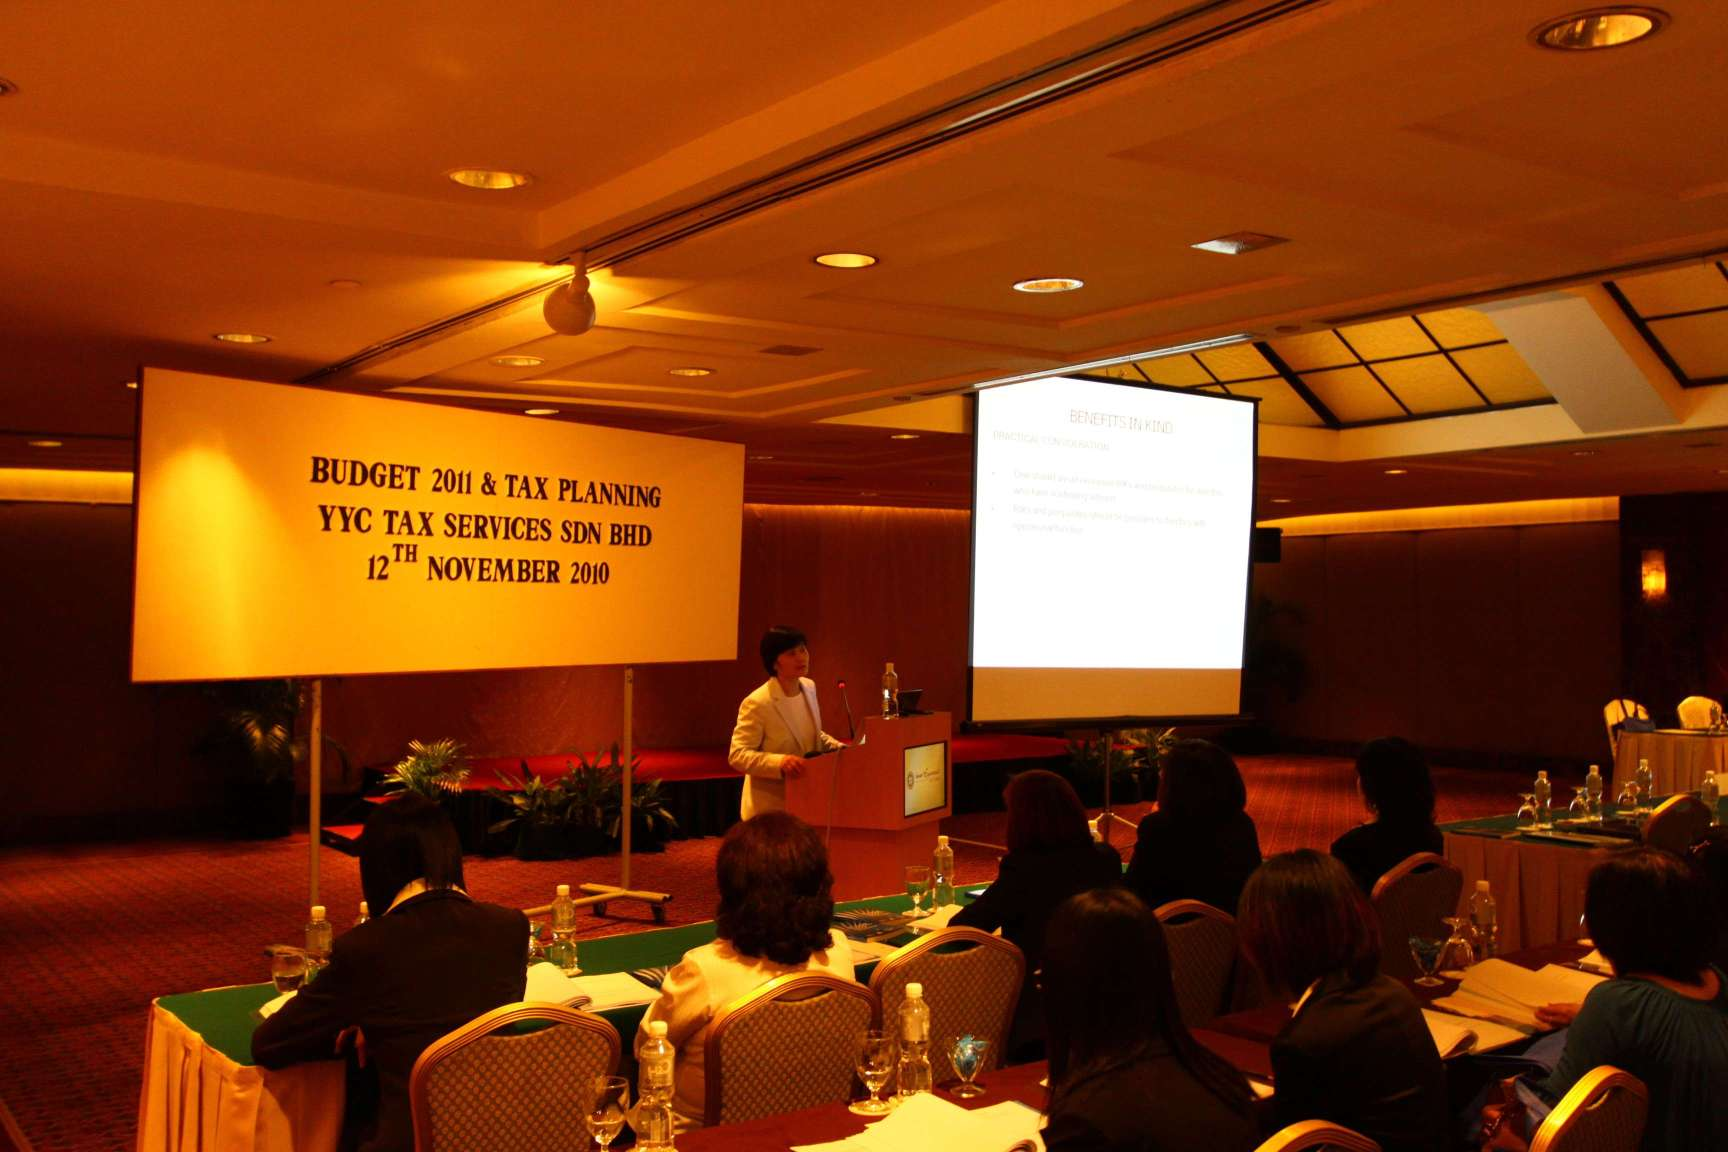 Budget 2011 & Tax Planning -YYC Tax Services Sdn Bhd (12 November 2010)